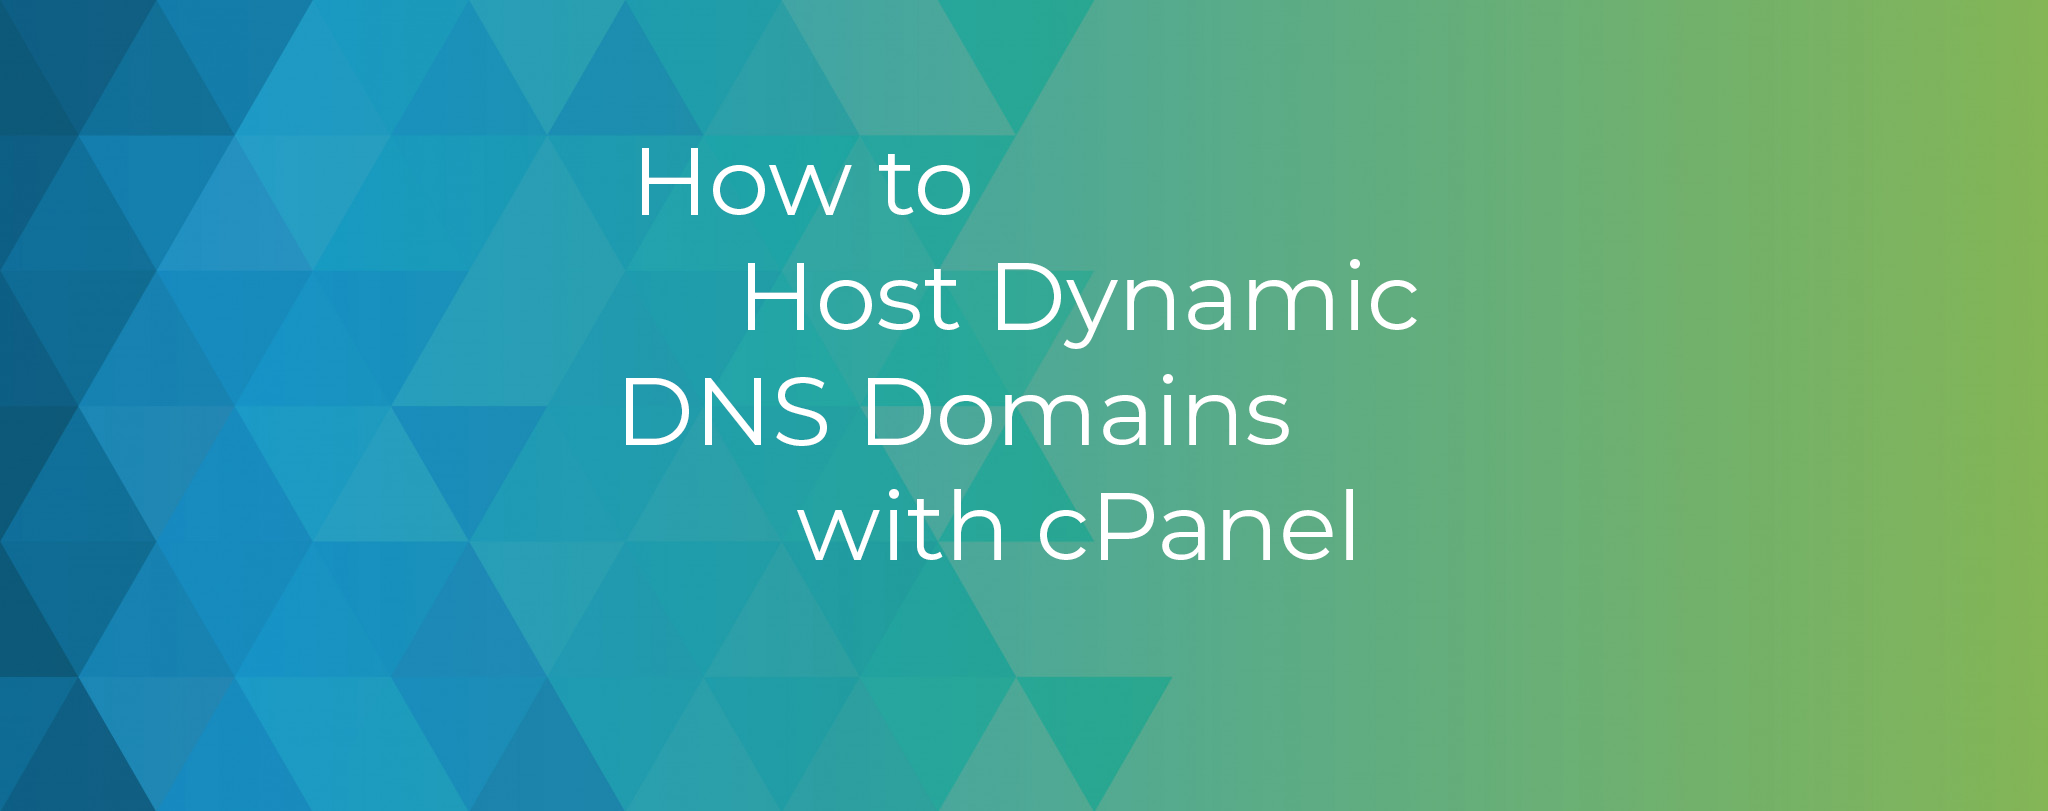 How to Host Dynamic DNS Domains with cPanel